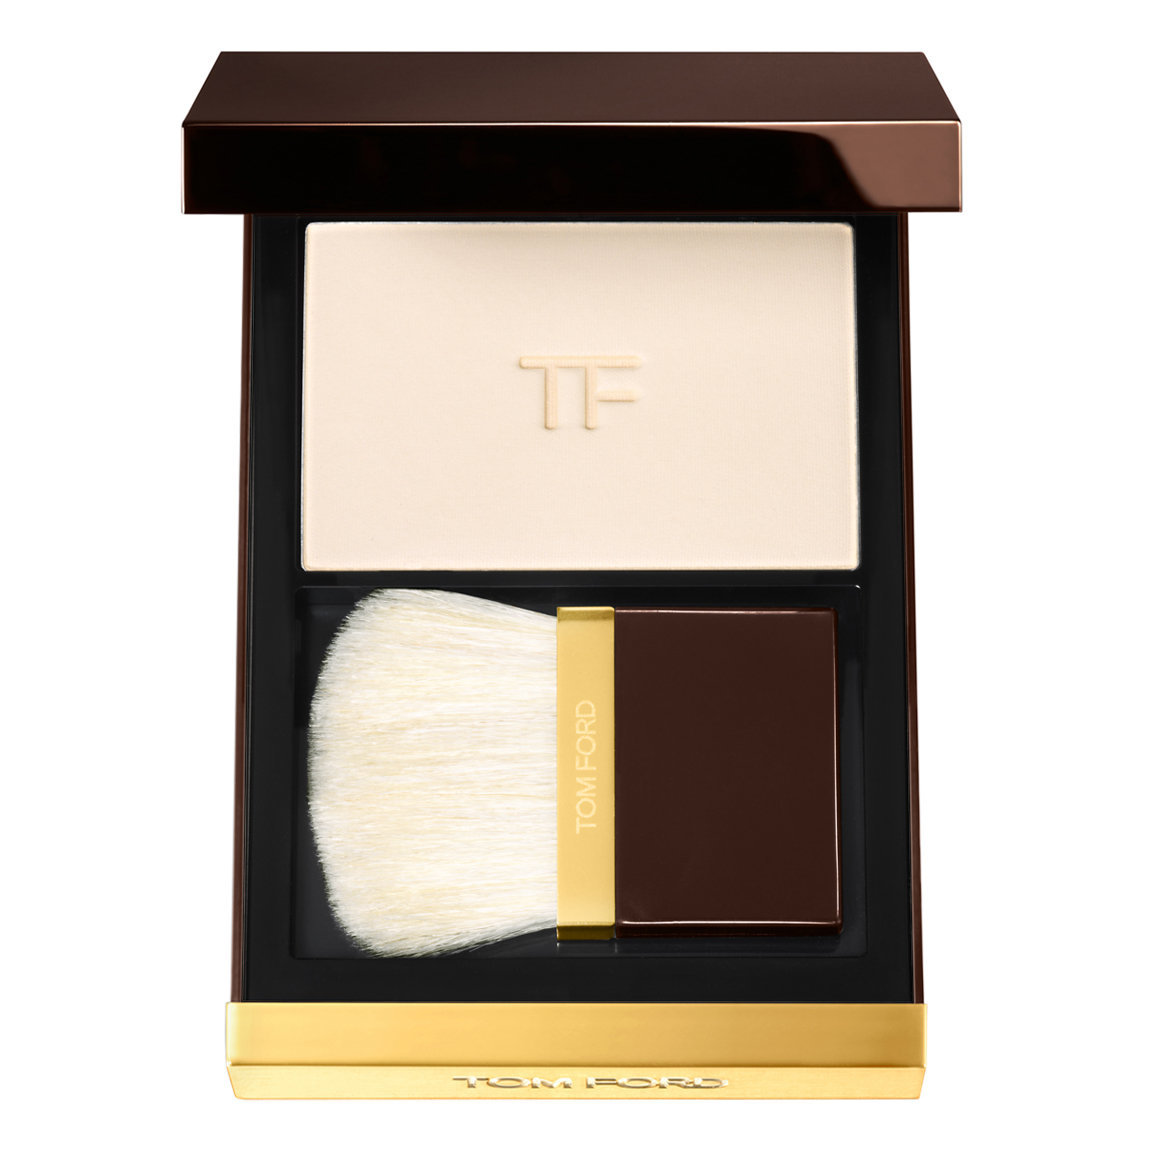 TOM FORD Translucent Finishing Powder Alabaster Nude alternative view 1 - product swatch.